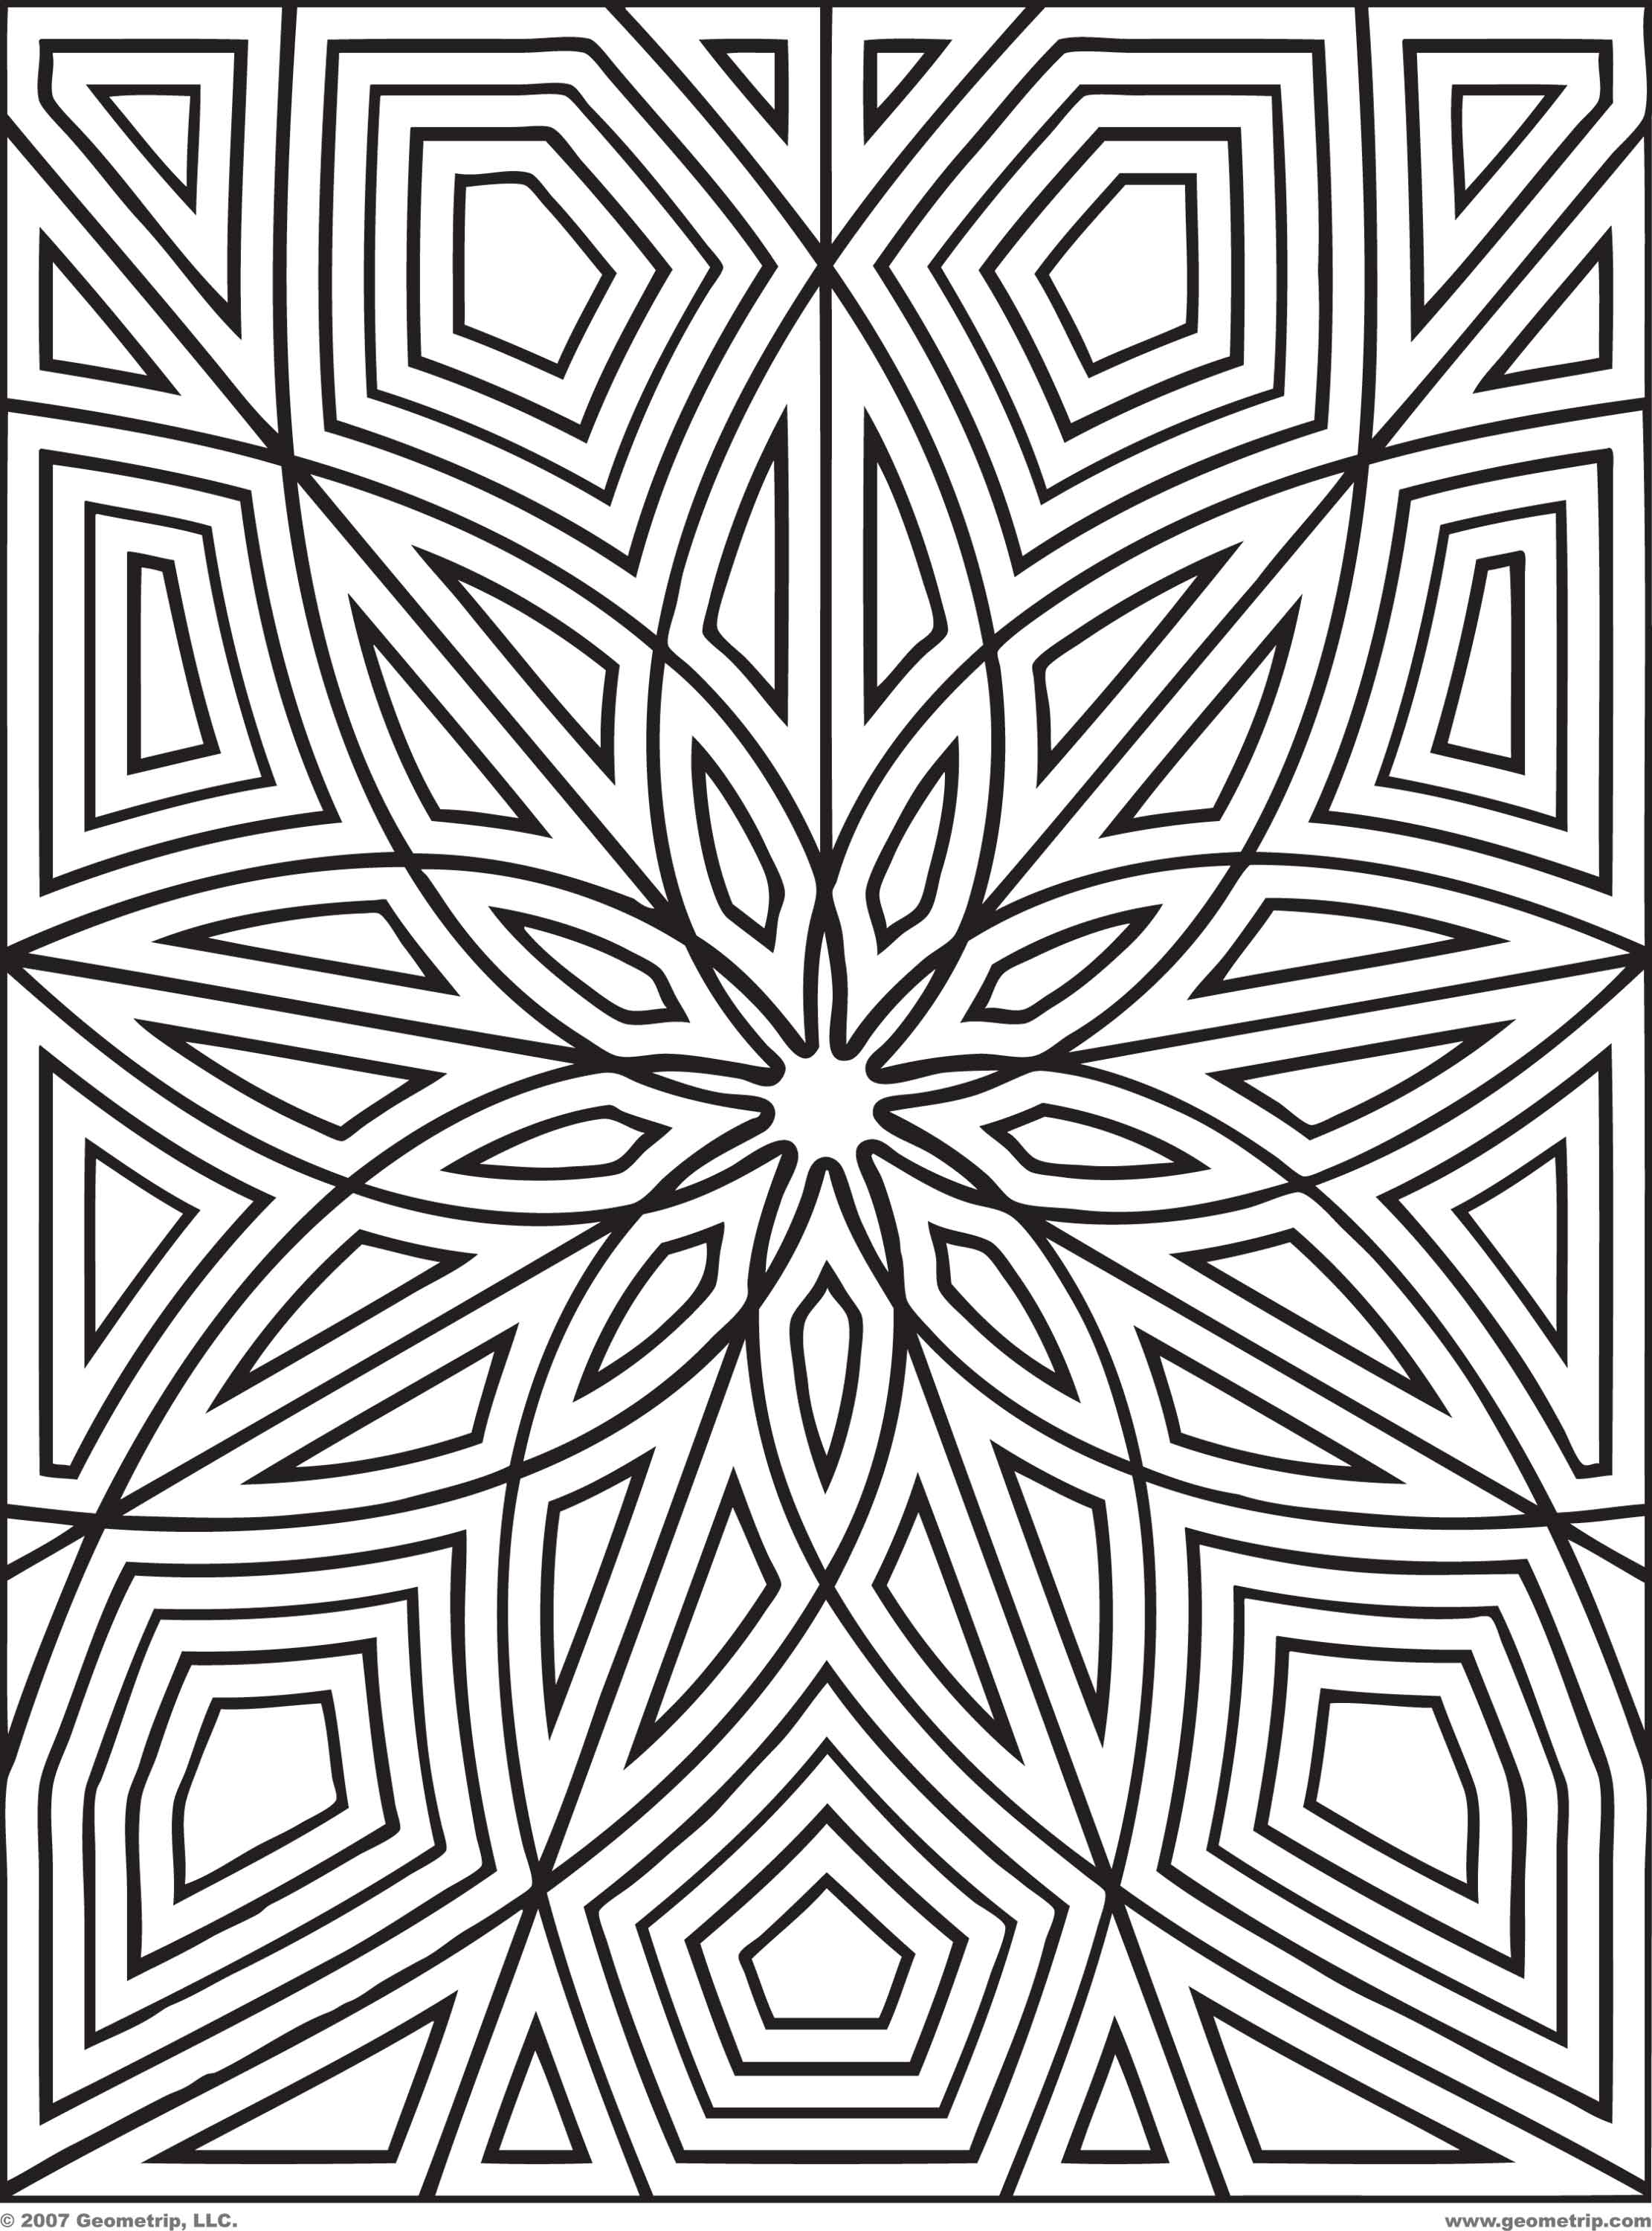 designs coloring pages for adults - photo#20